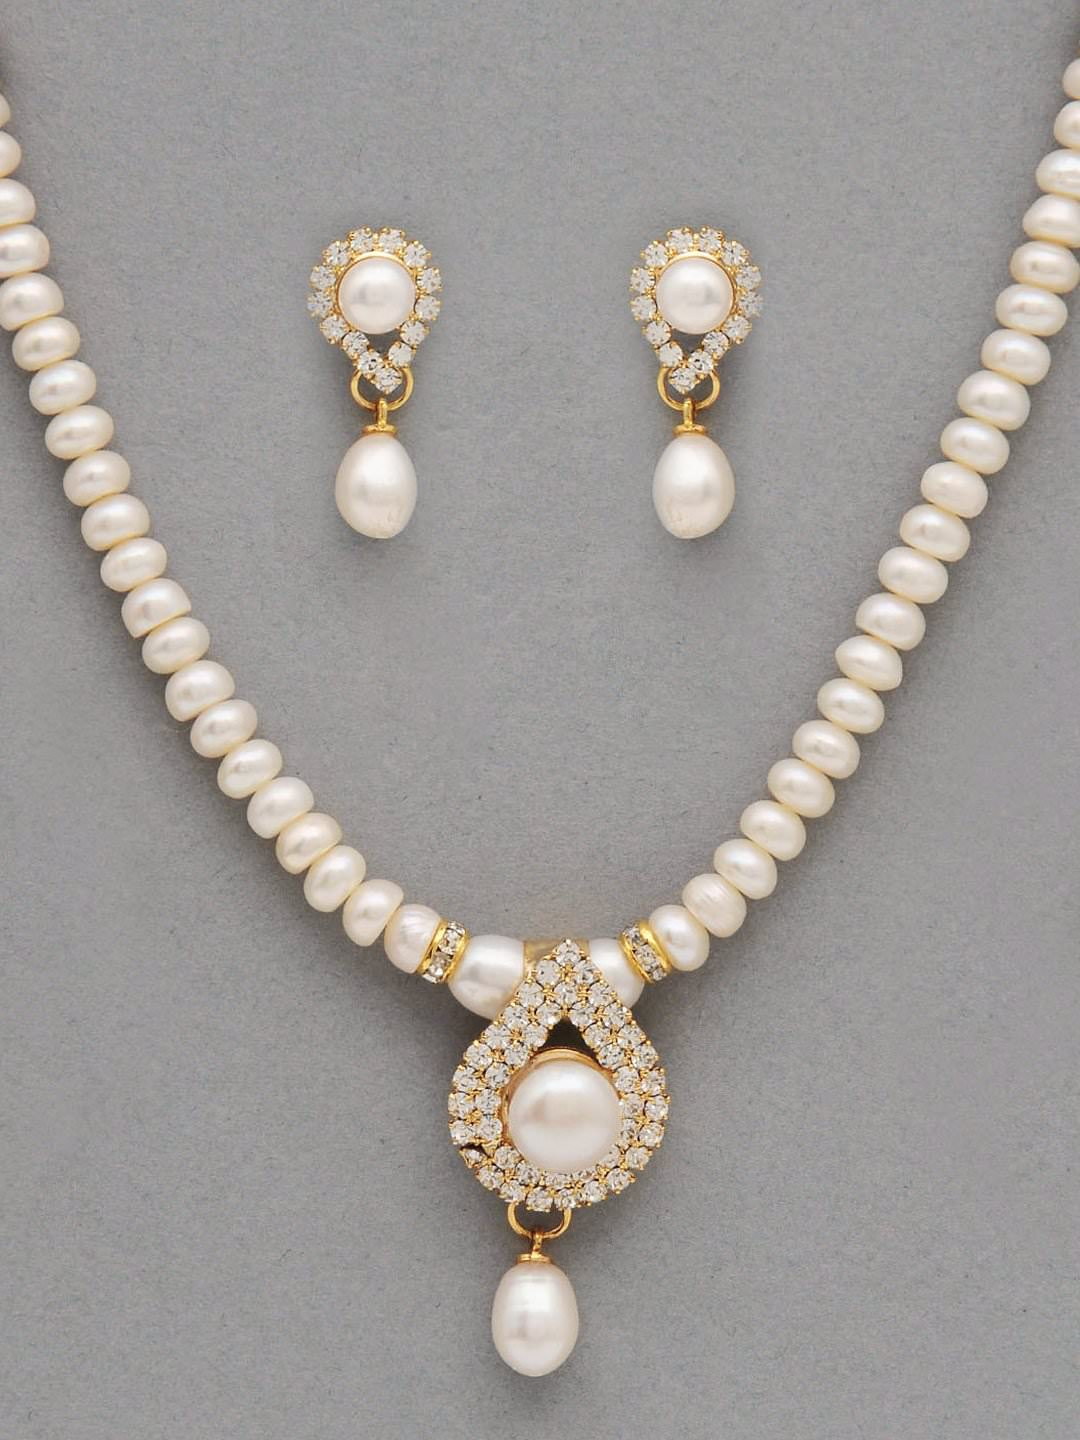 it's pearl jewelry for 30th wedding anniversary